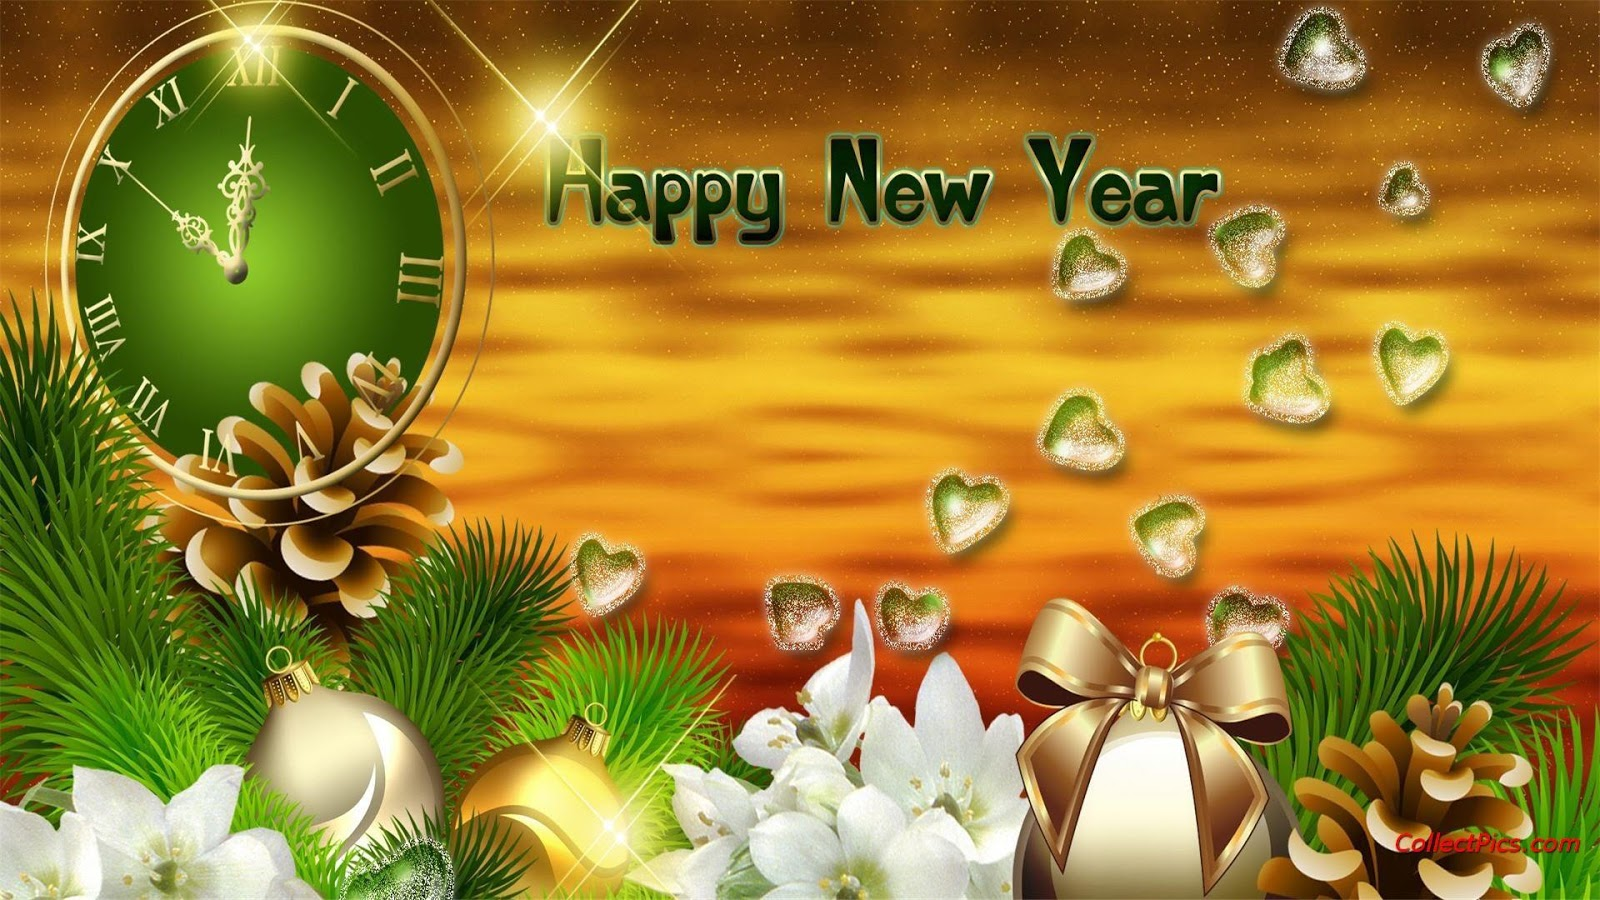 Wallpaper For New Year